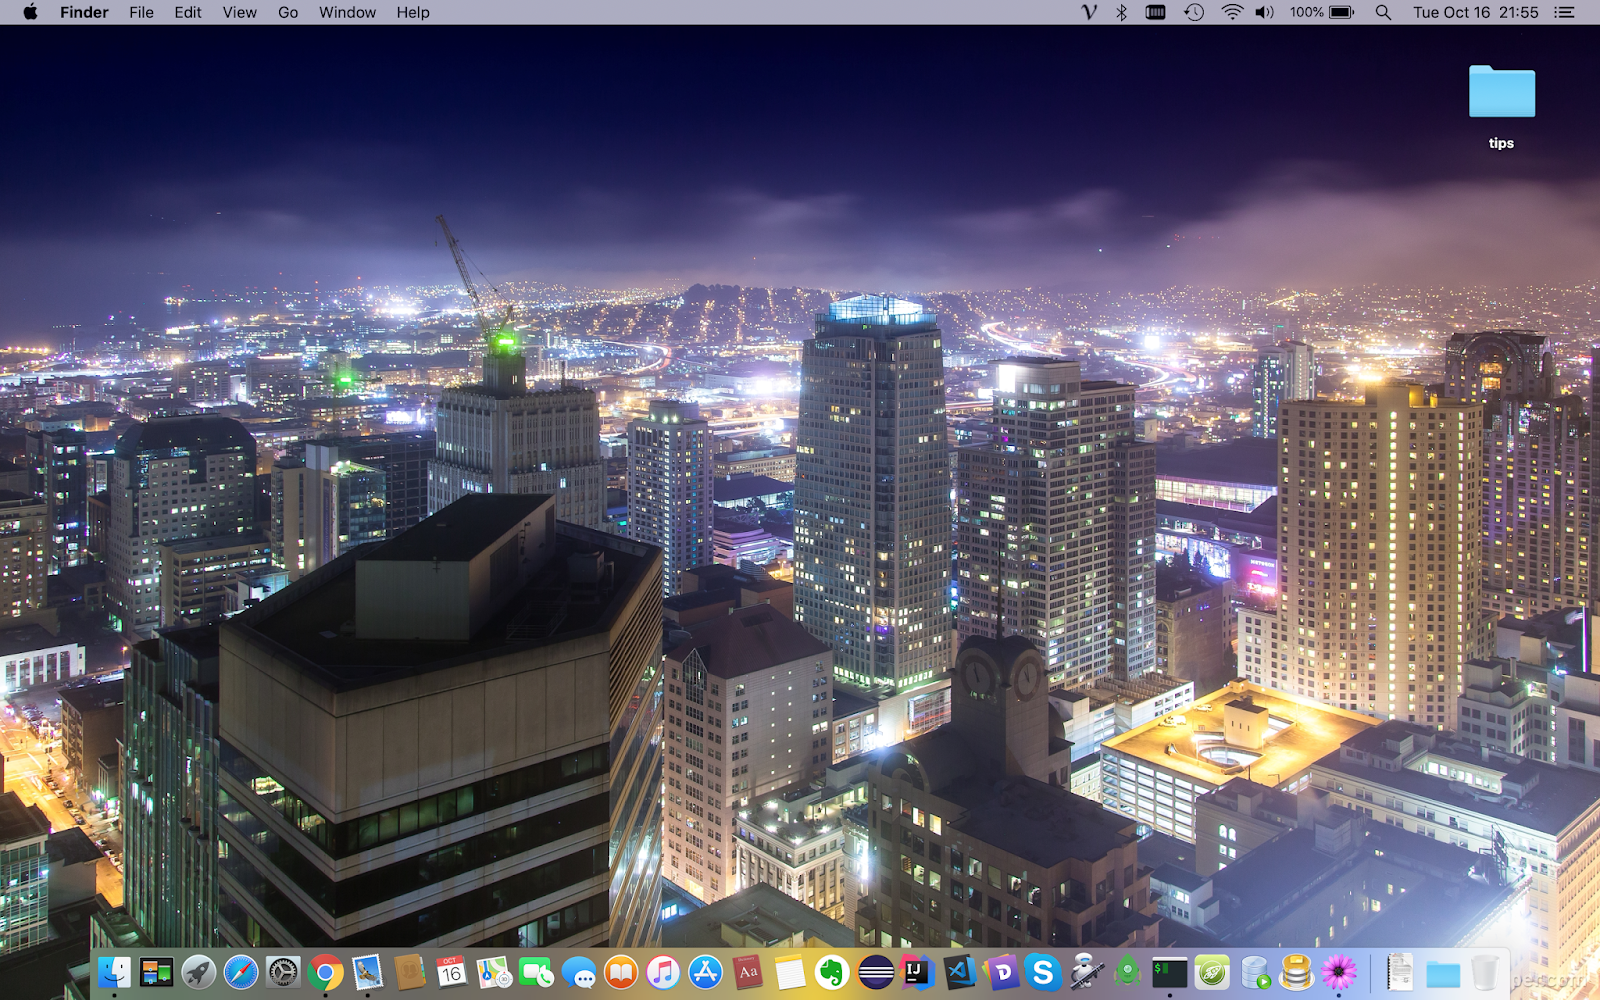 Tips and Tricks for macOS: Free Download Dynamic Desktops for macOS